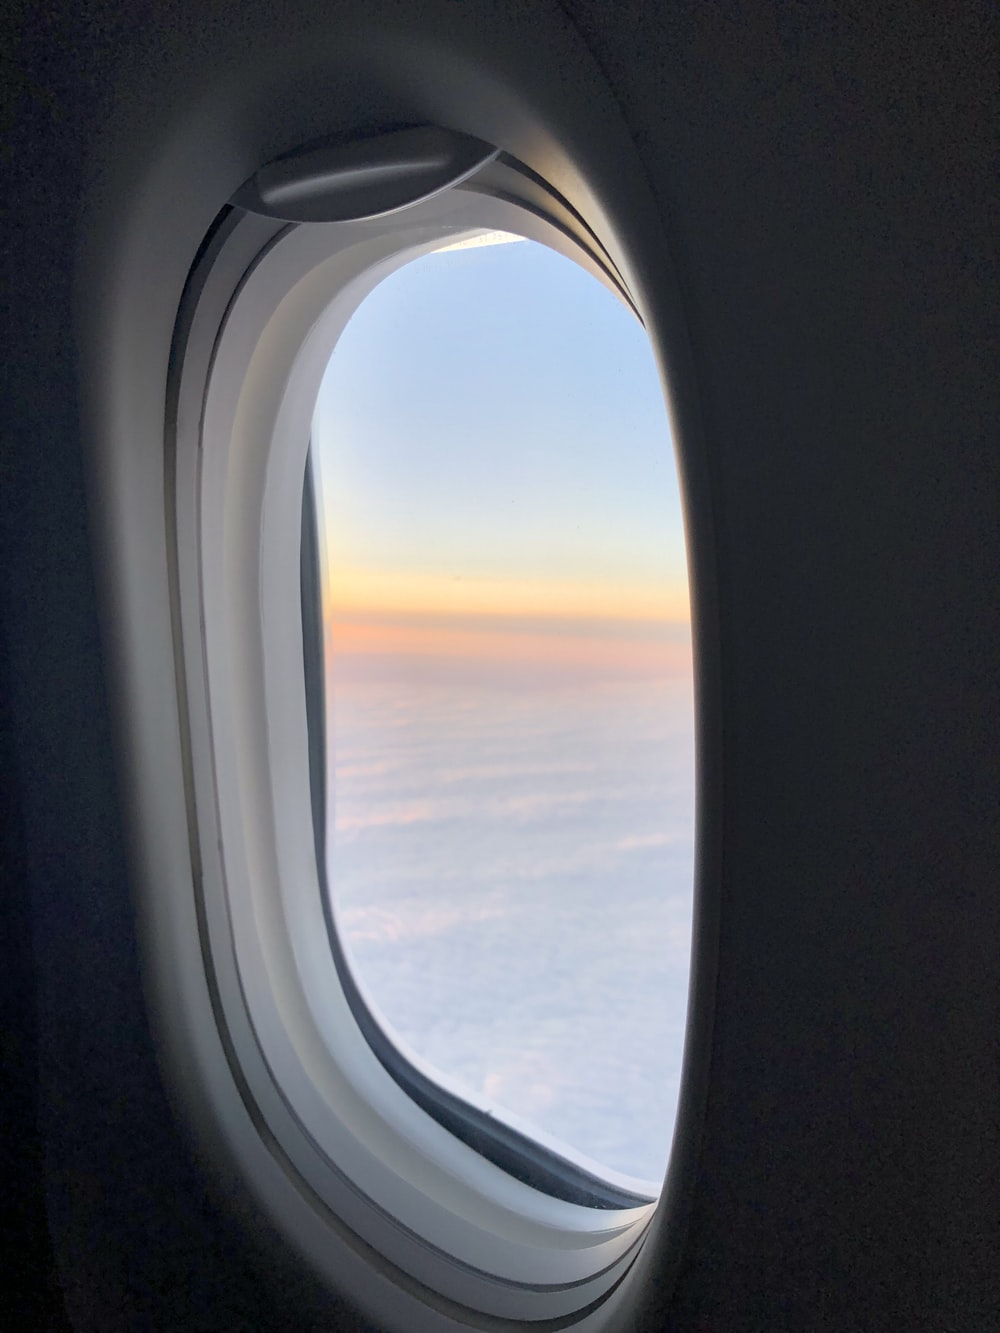 airplane window view of white clouds during daytime